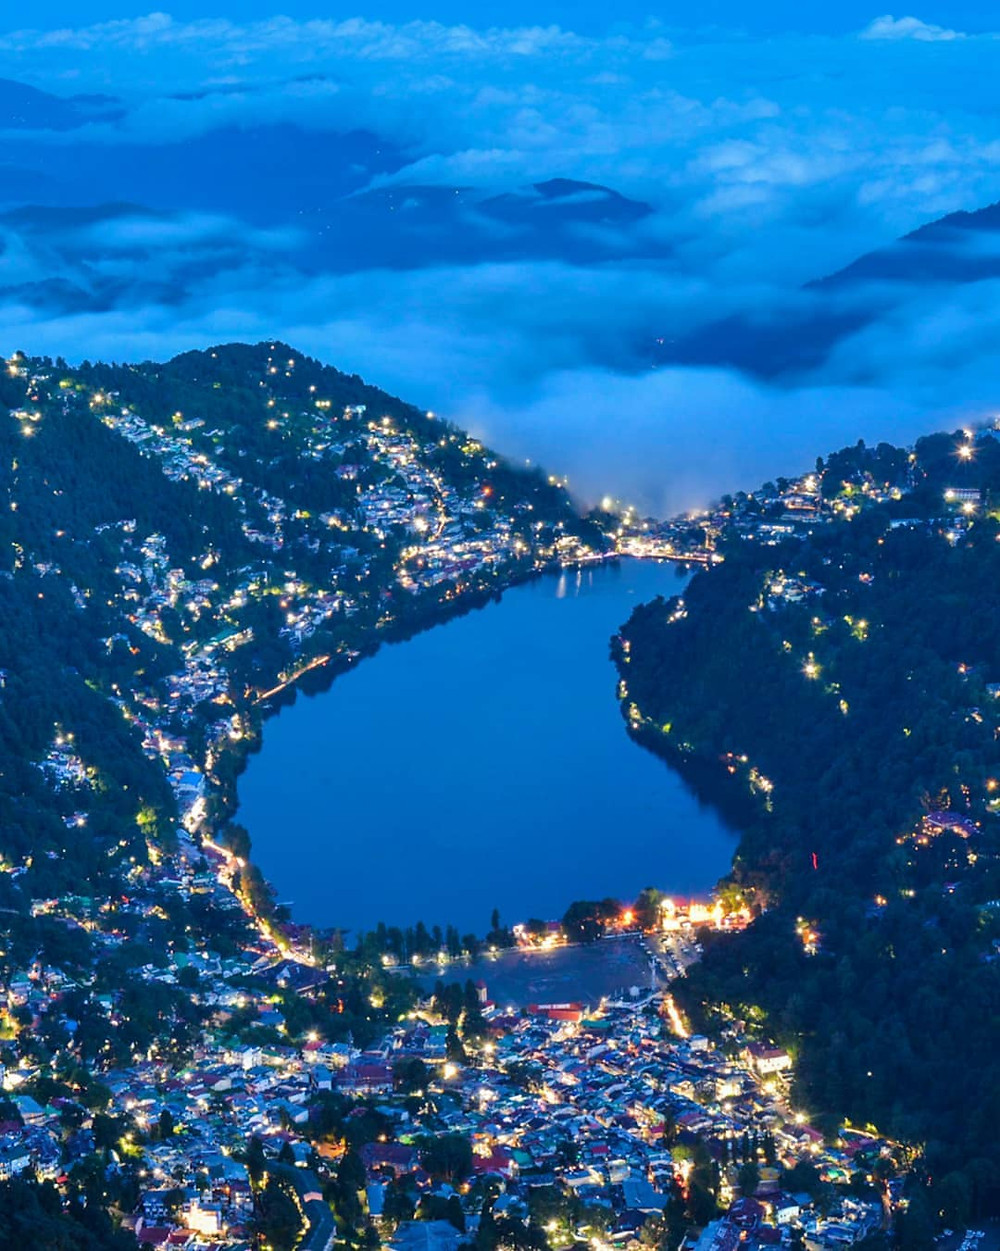 Night view of Nainital city.